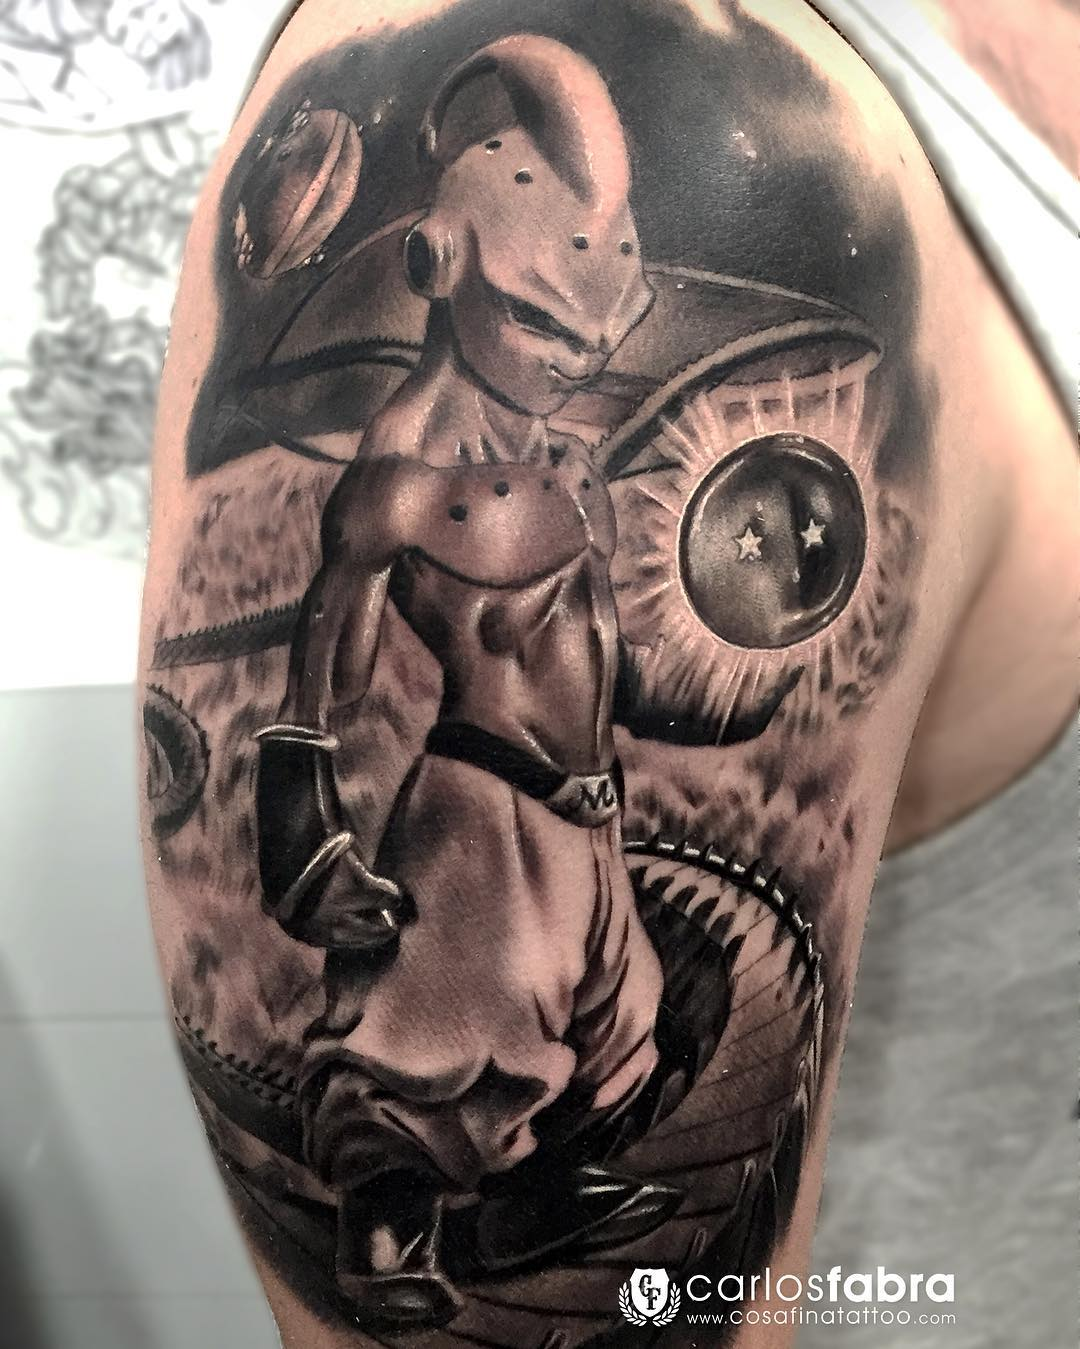 Hs Tatouage Dbz Avant Bras Sur Le Forum Dragon Ball Z Dokkan Battle